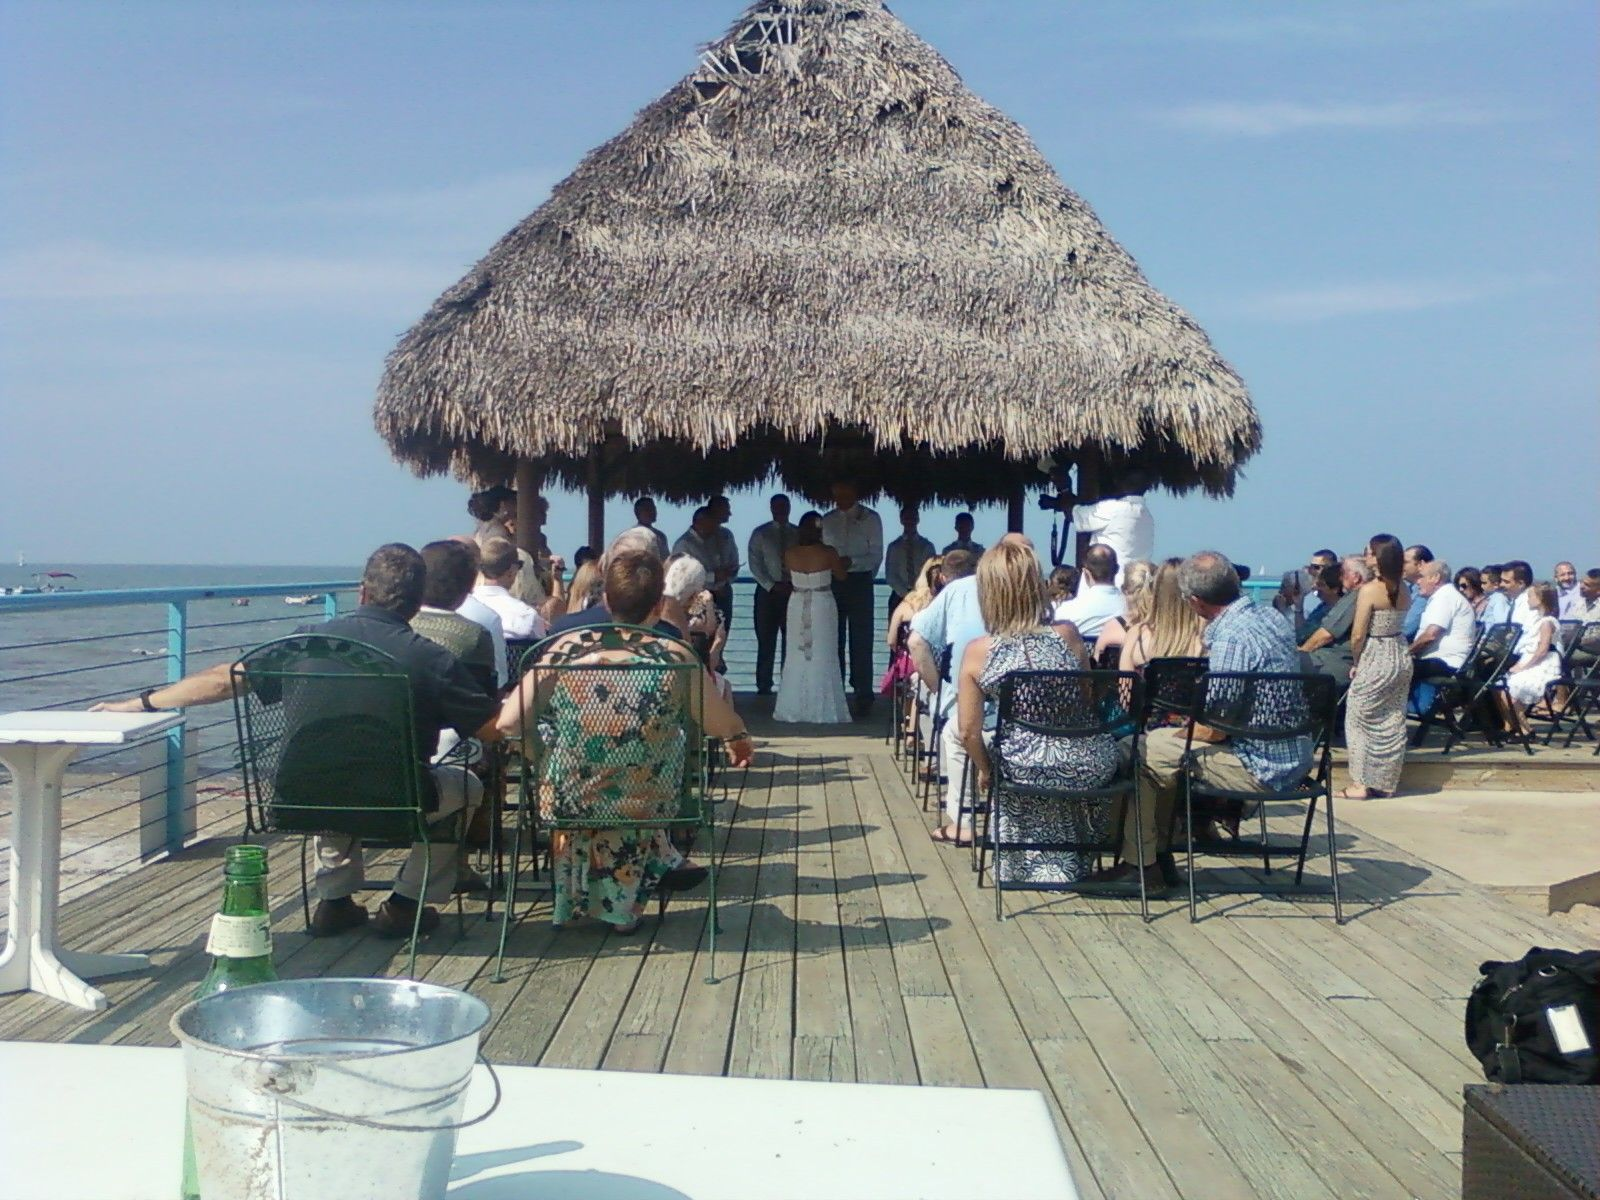 2013 wedding and reception on the beach in Port Clinton, Ohio